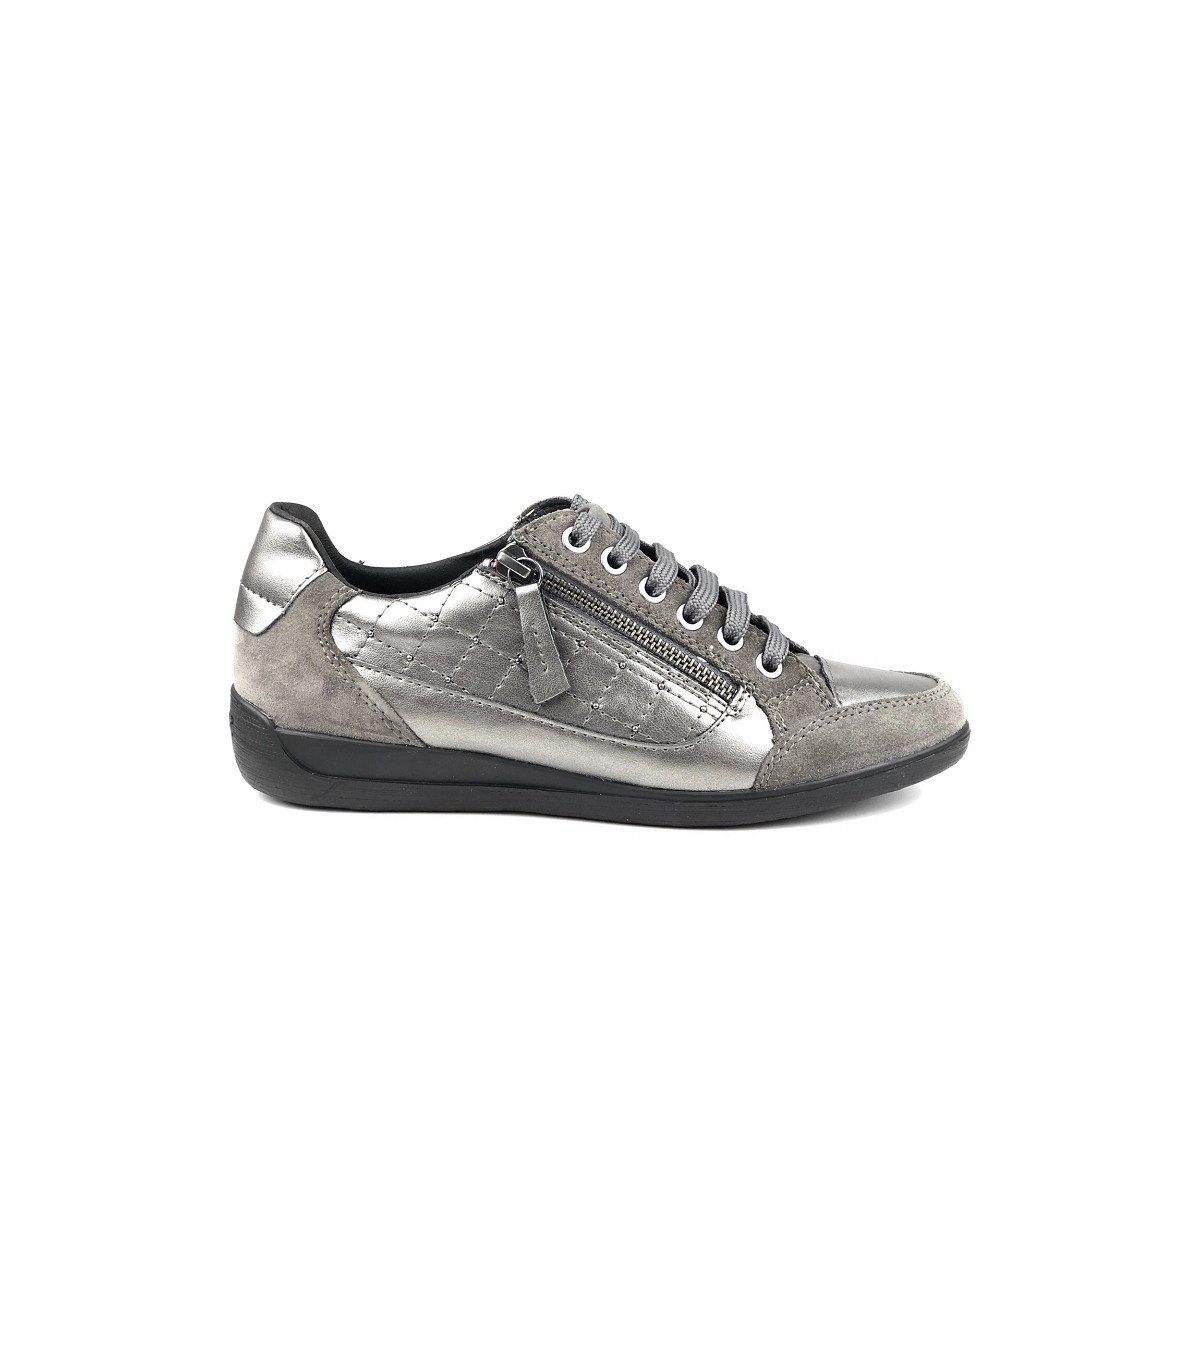 Baskets Femme GEOX MYRIA basses gris confortable |Univers